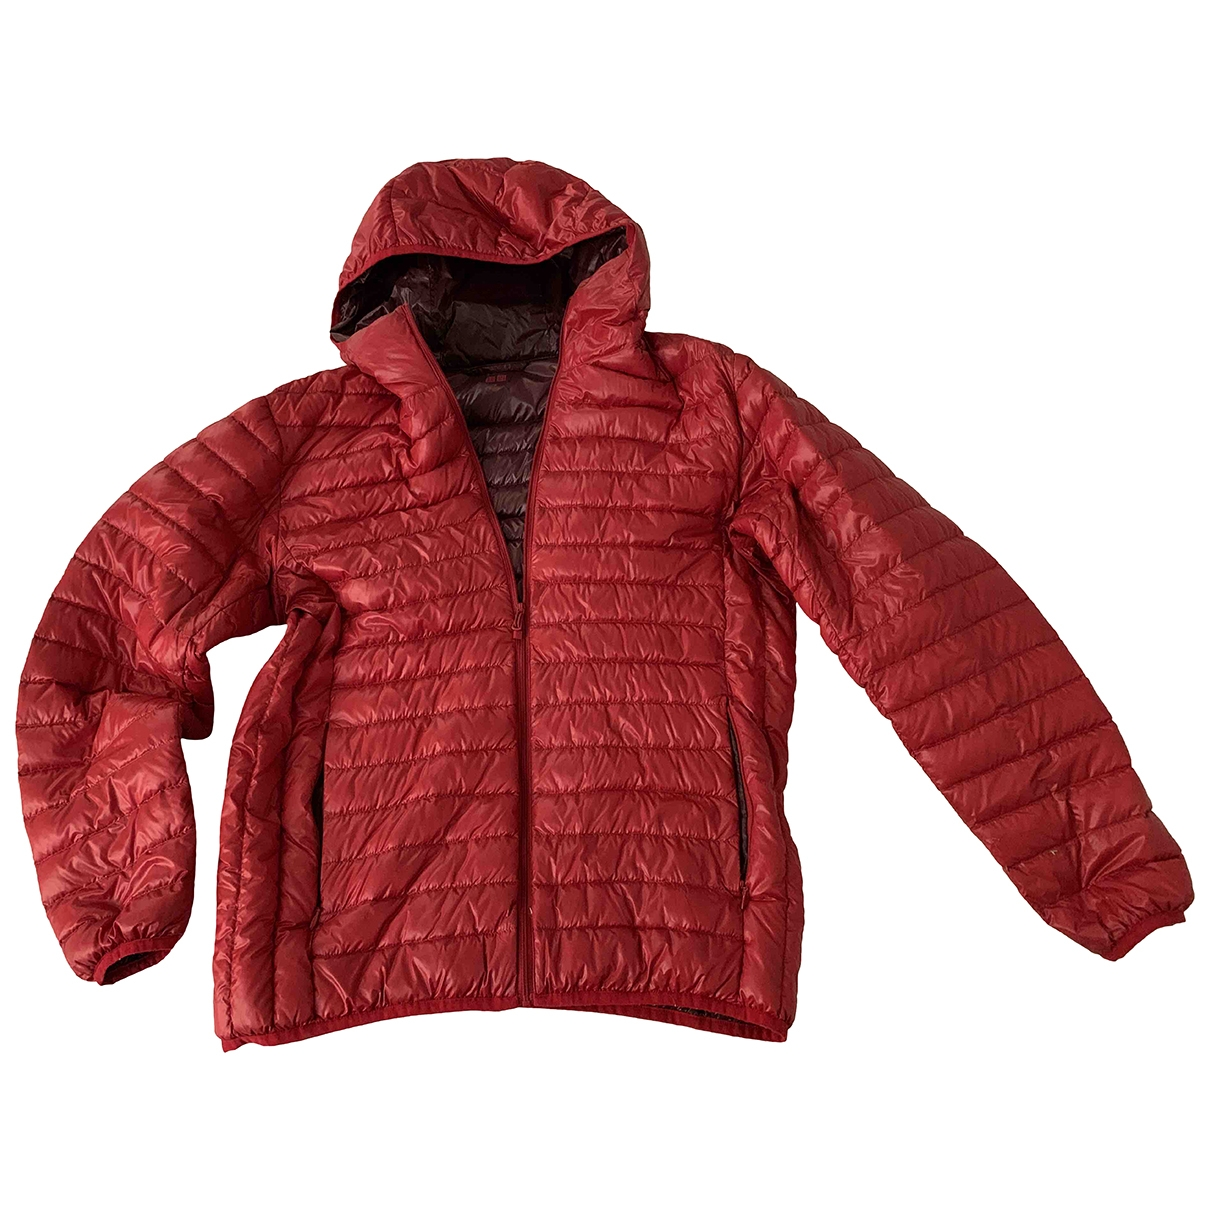 Uniqlo \N Jacke in  Rot Polyester